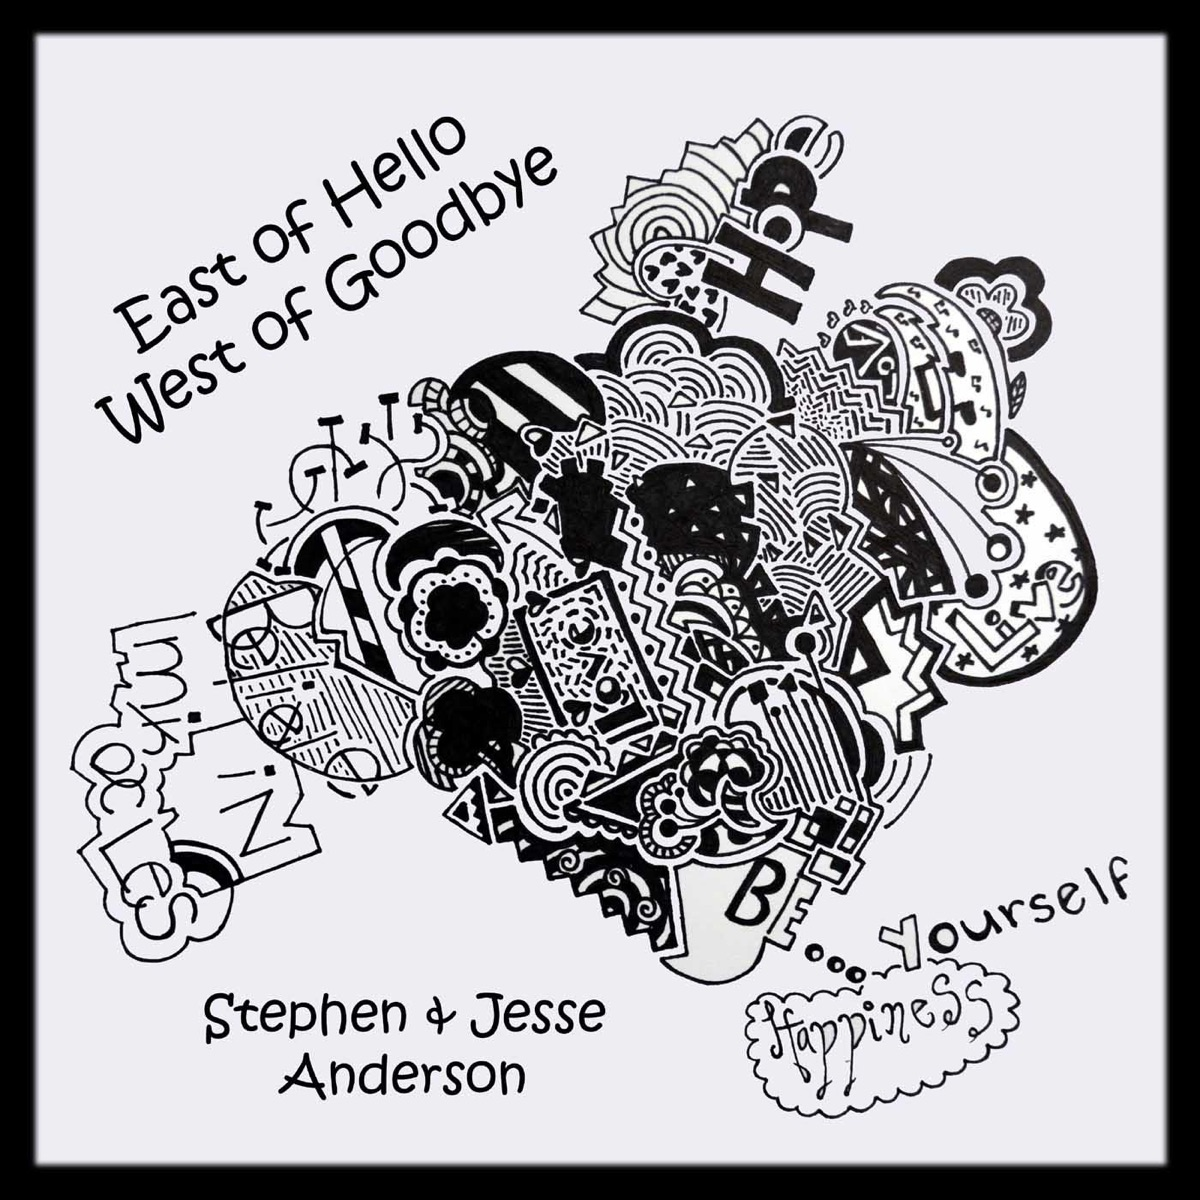 East of Hello West of Goodbye Stephen Anderson  Jesse Anderson CD cover